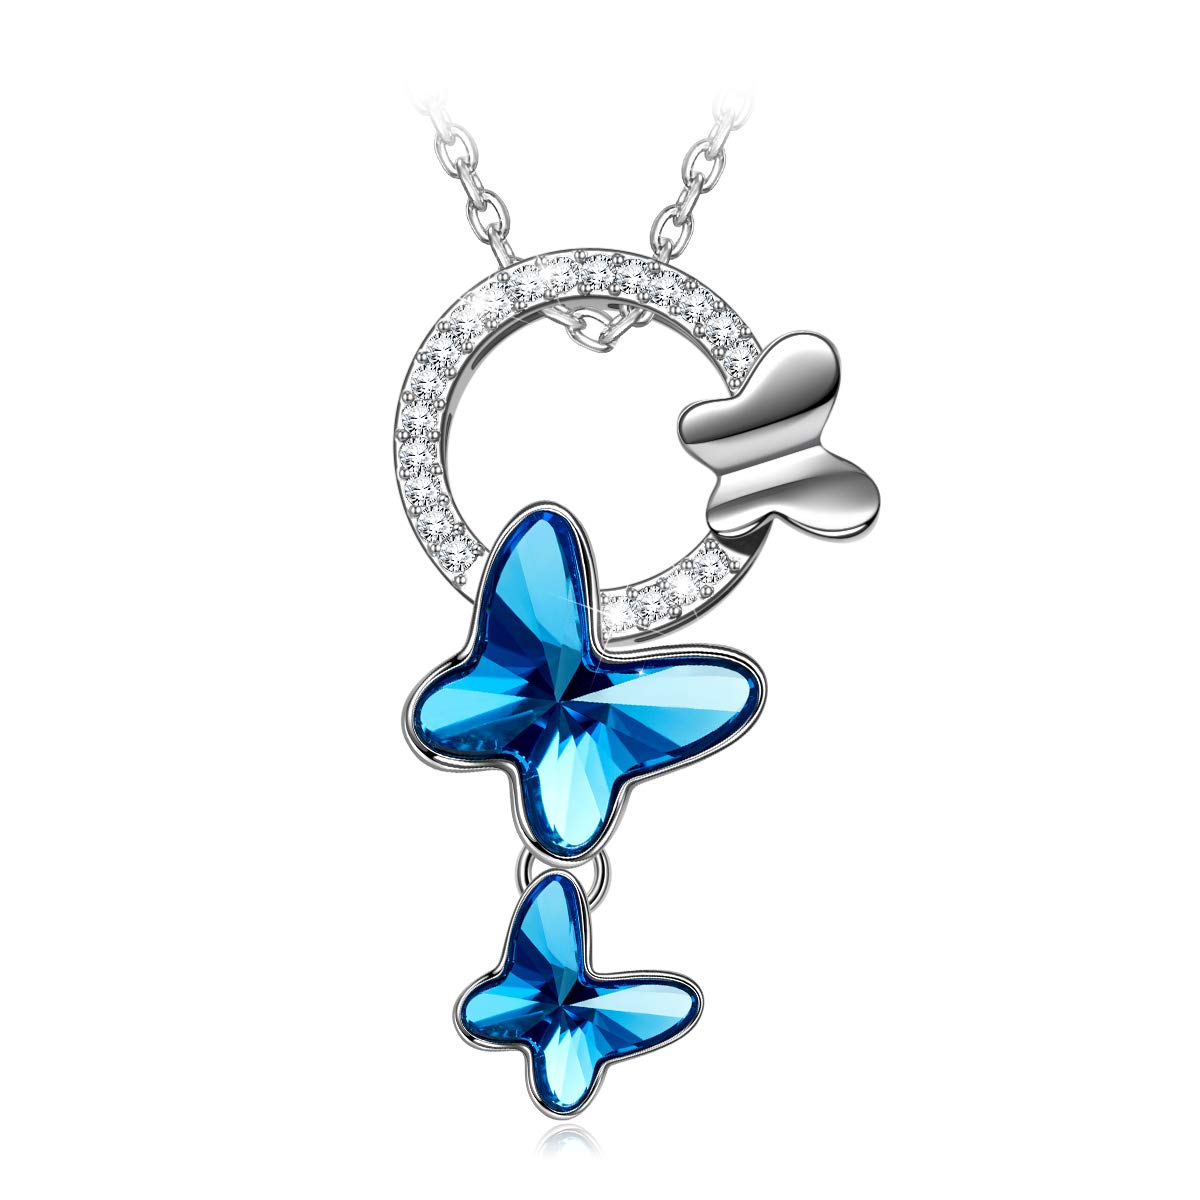 PAULINE&MORGEN ✦ Butterfly Dream ✦ Mother's Day Necklace Gifts for Her Women Butterfly Pendant Necklace for Women with Denim Blue Crystal from Swarovski Hypoallergenic